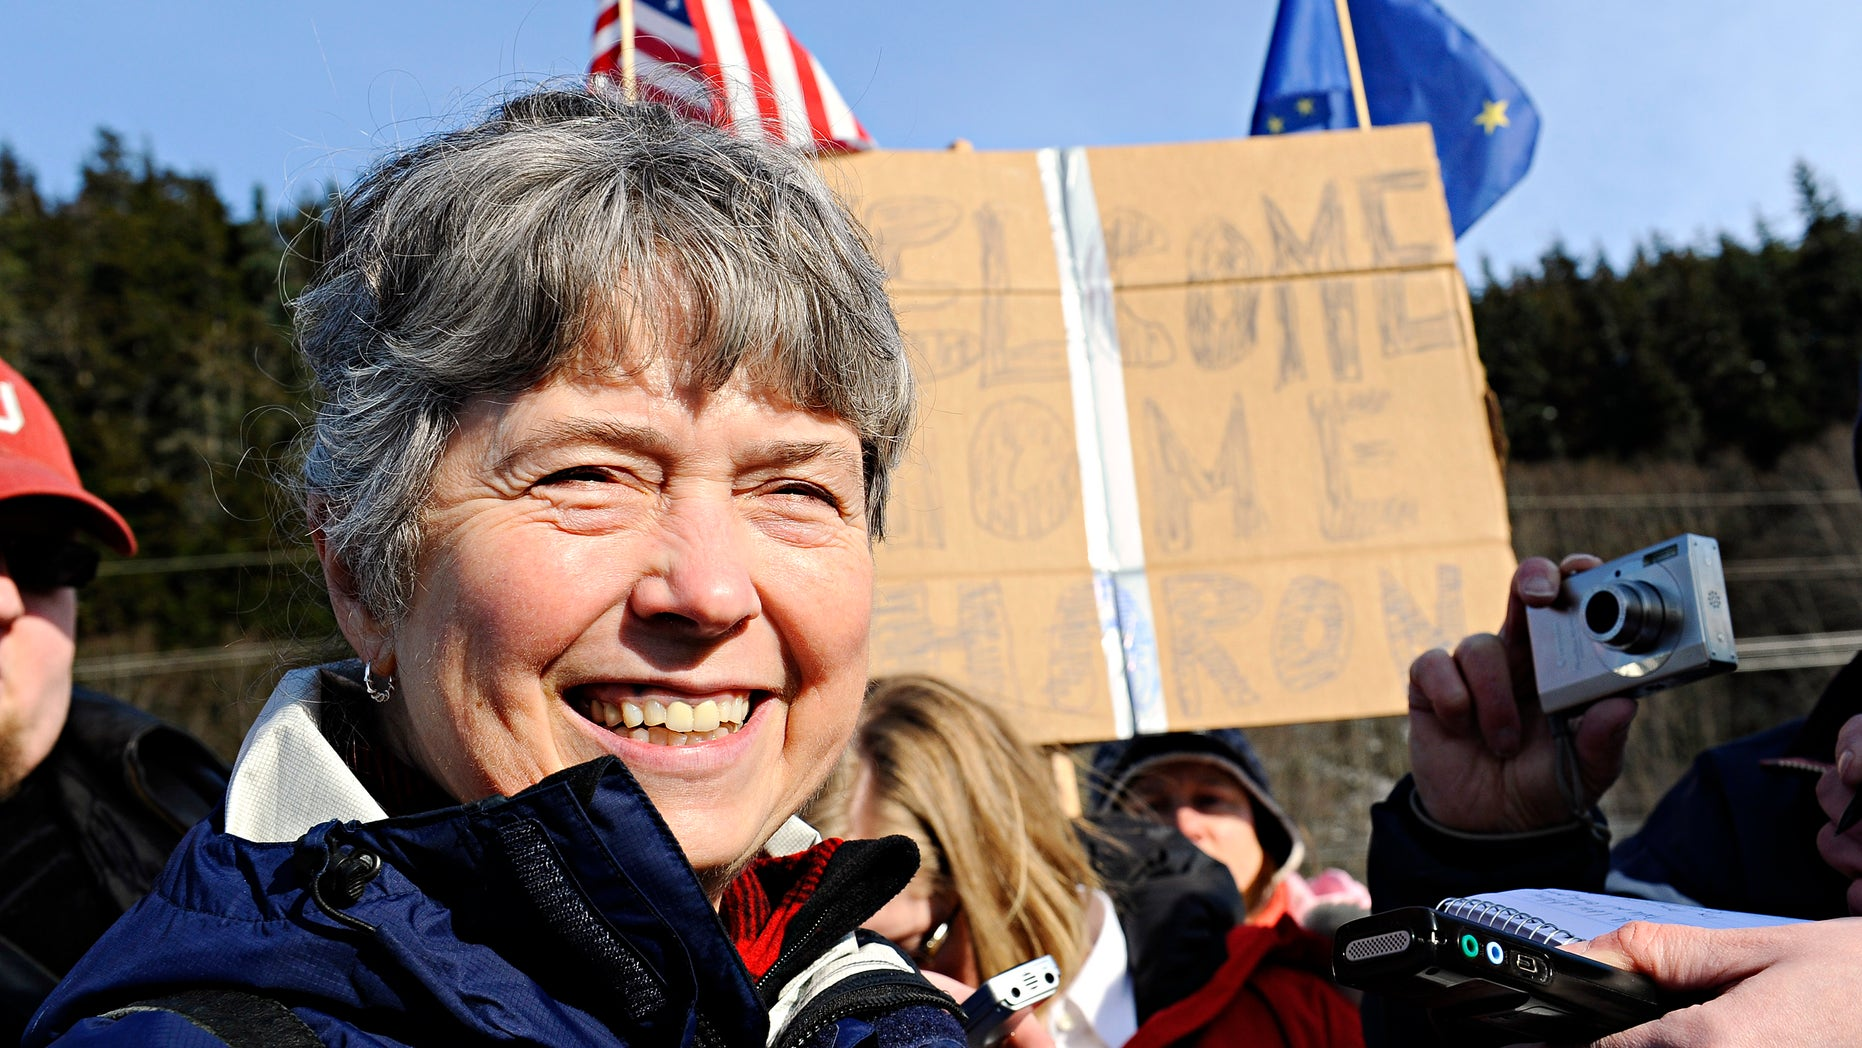 Rep. Sharon Cissna, D-Anchorage, answers questions from members of the press after disembarking the Alaska Ferry Matanuska, in Juneau, AK., Thursday, Feb. 24th, 2011. (AP)